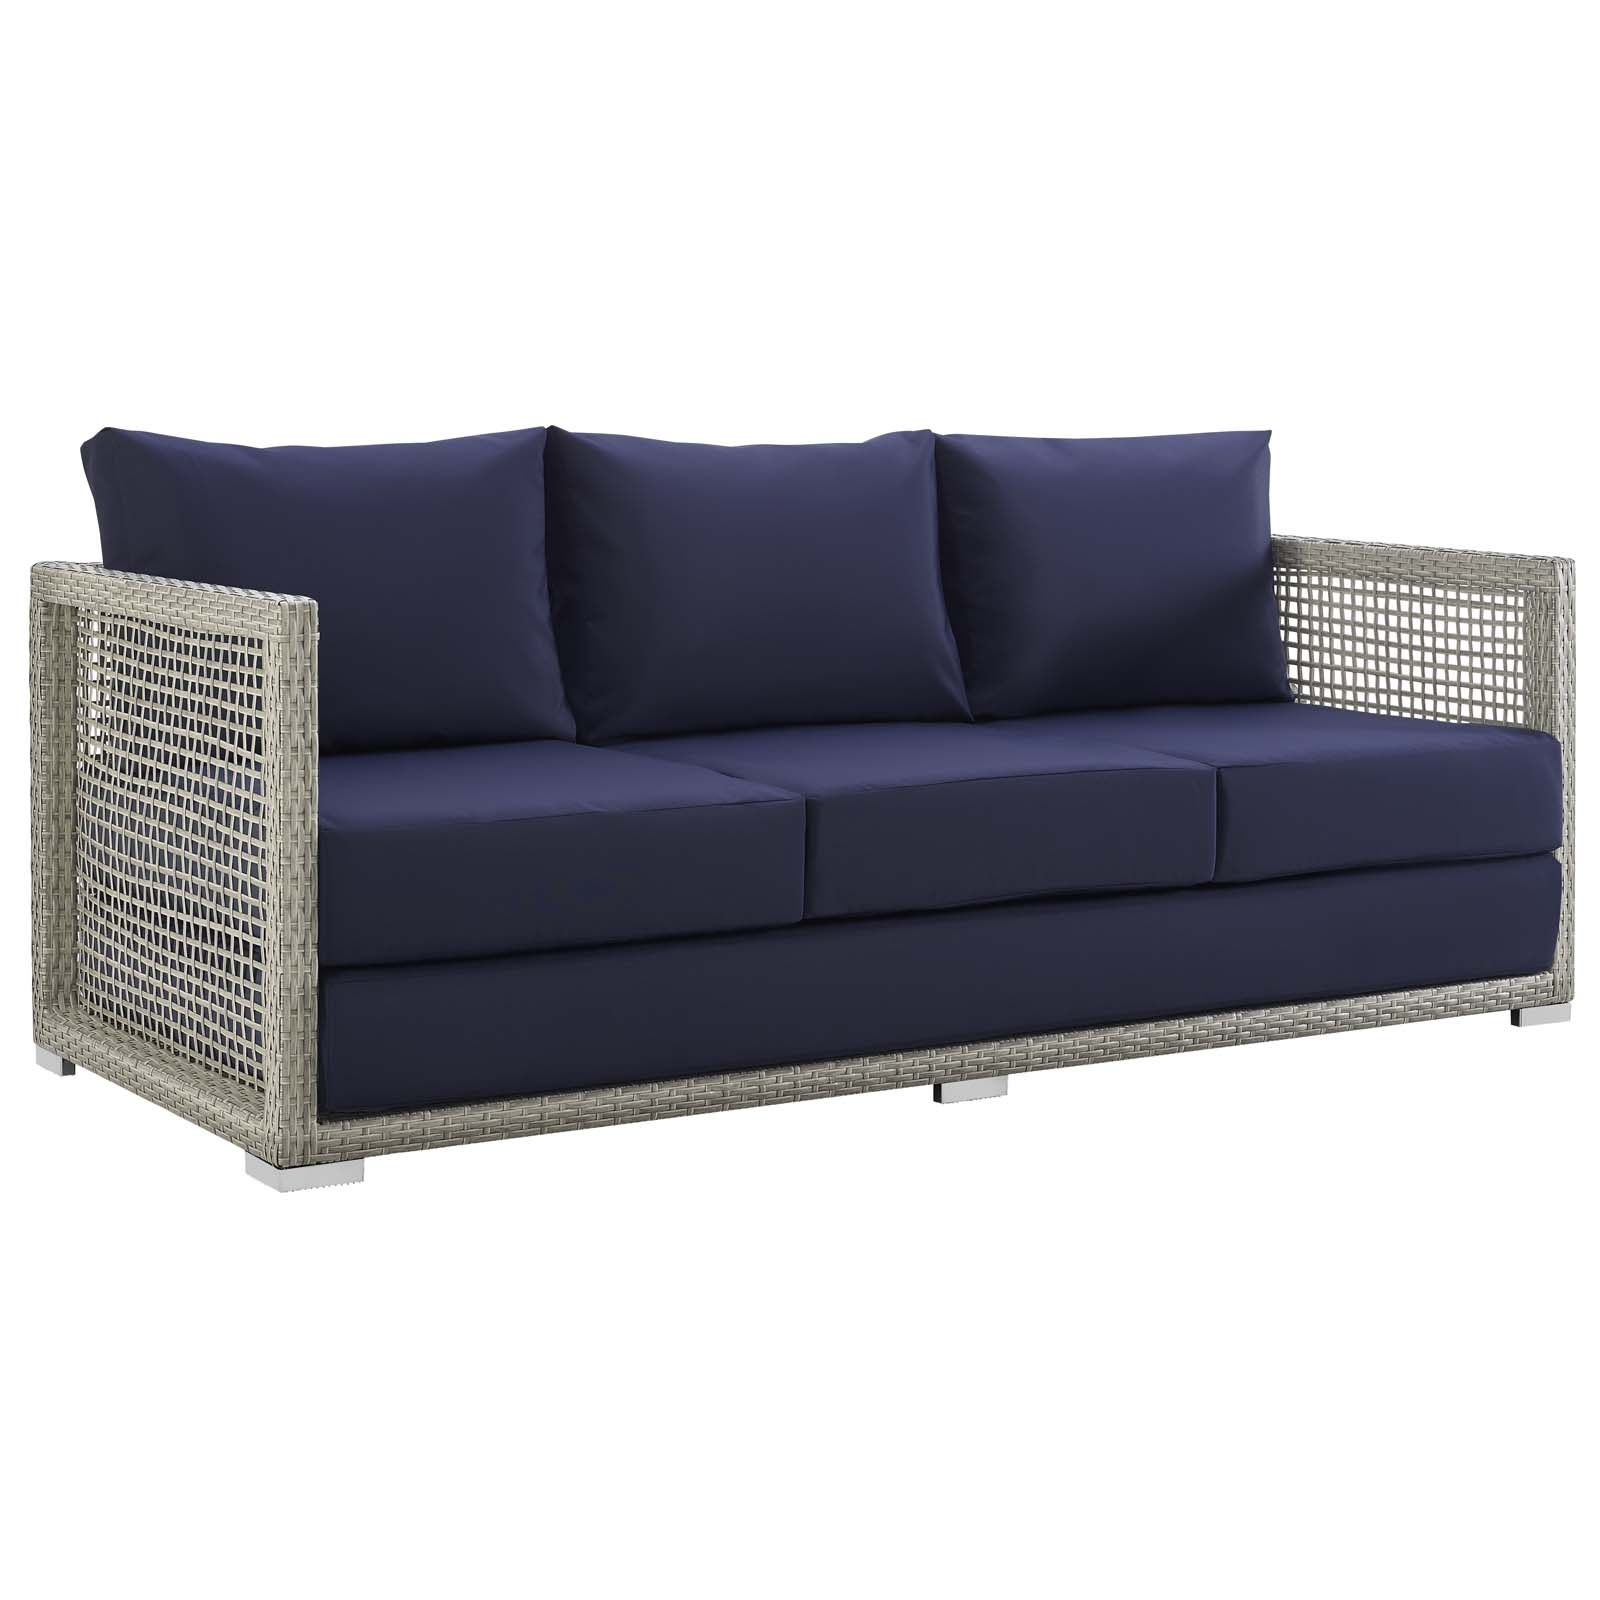 Rattan Sofa Aura Patio Wicker Rattan Sofa In Gray And Navy By Modway